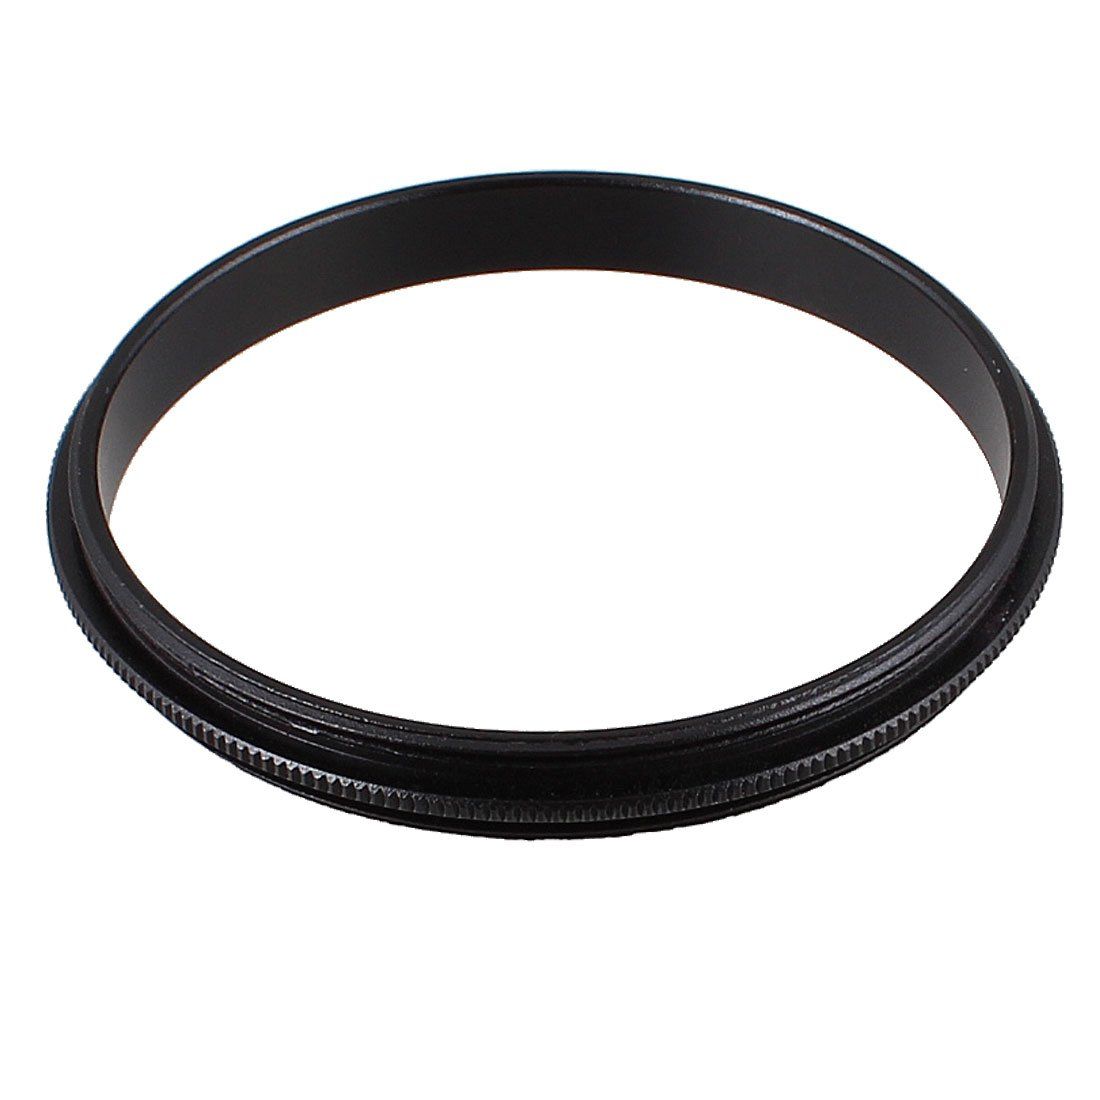 uxcell/® 49mm-49mm 49mm Male to Male Step Ring Adapter Black for Camera